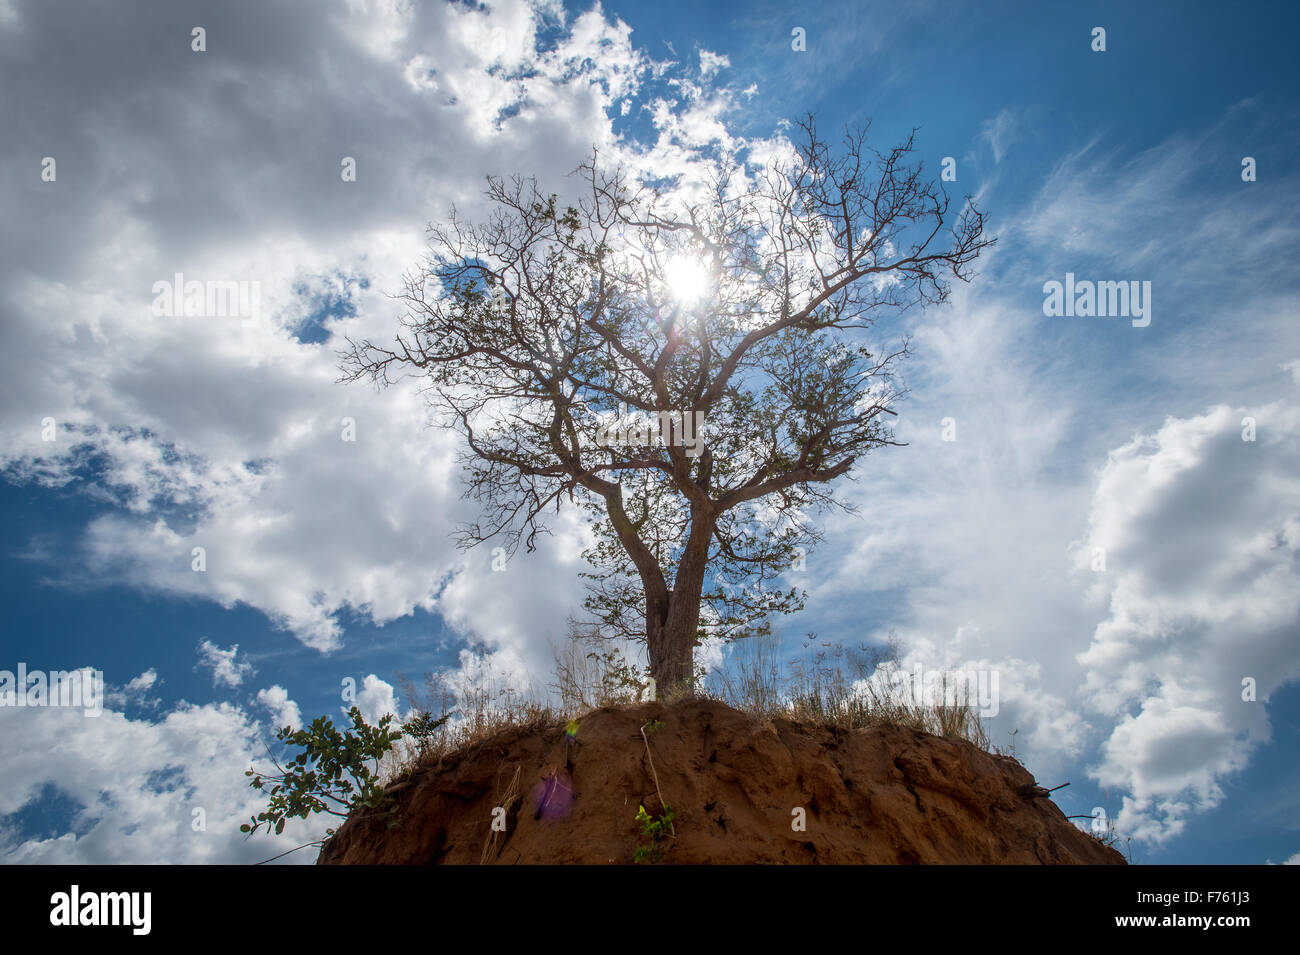 Kasane, Botswana - Chobe National Park Elephant-rubbed tree - Stock Image